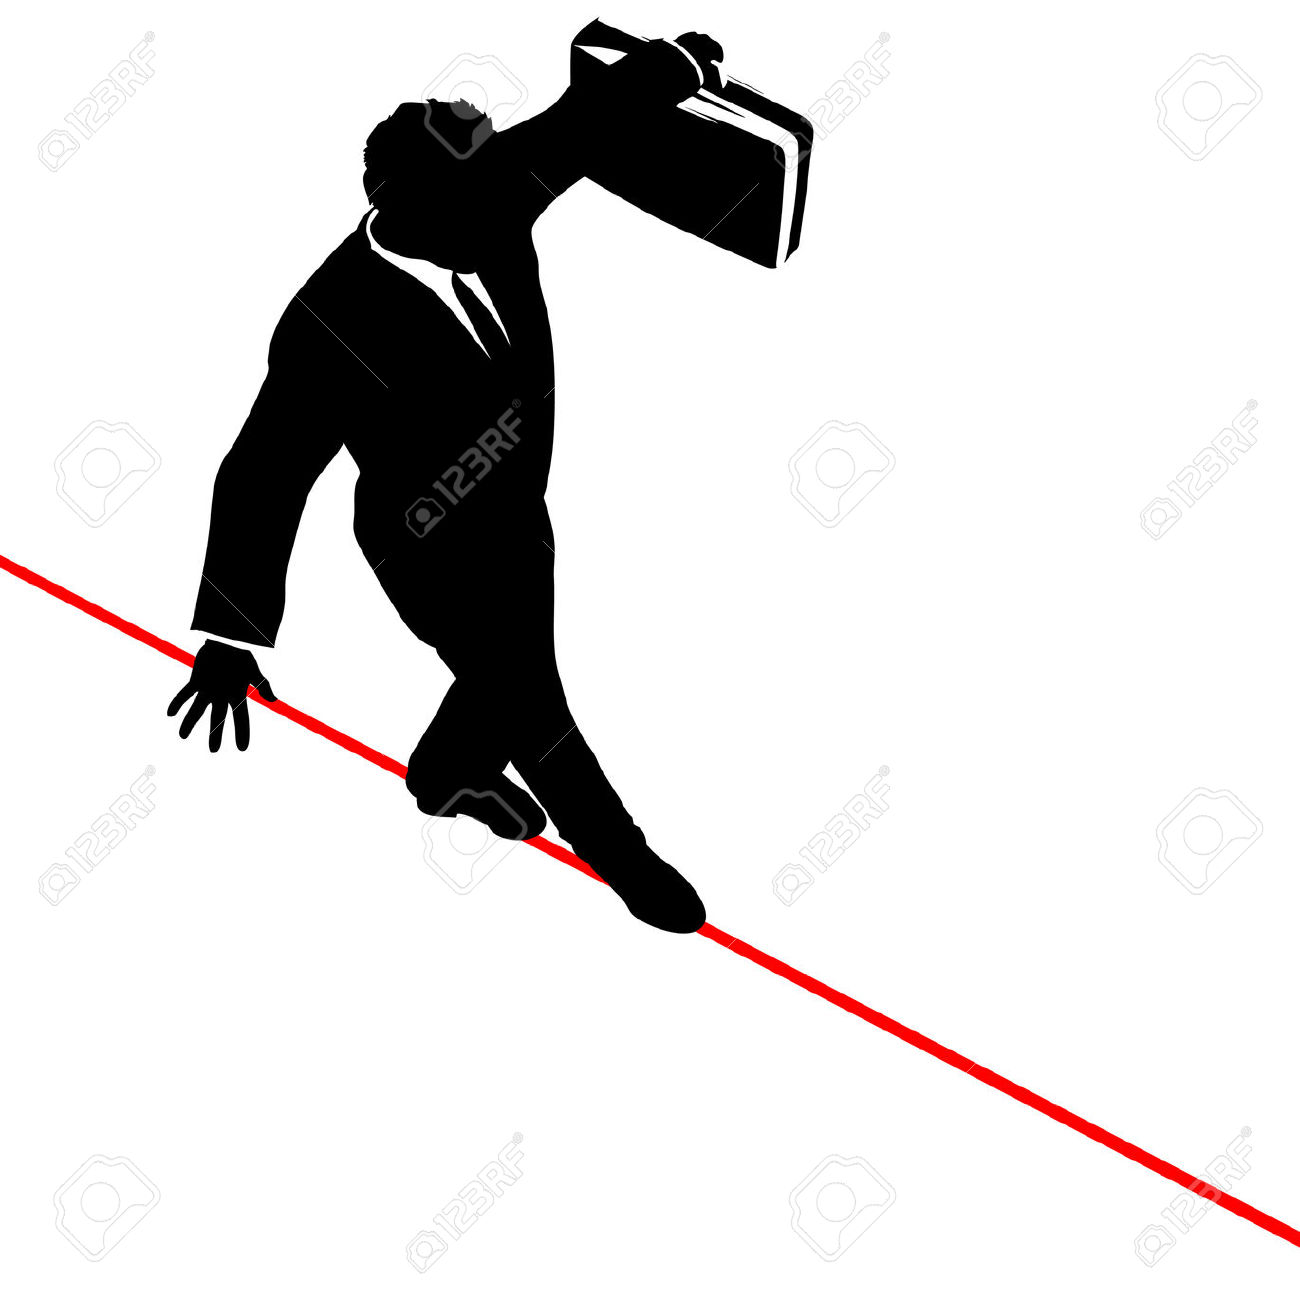 A Business Man Walks A High Wire Tightrope, Above Risk And Danger.